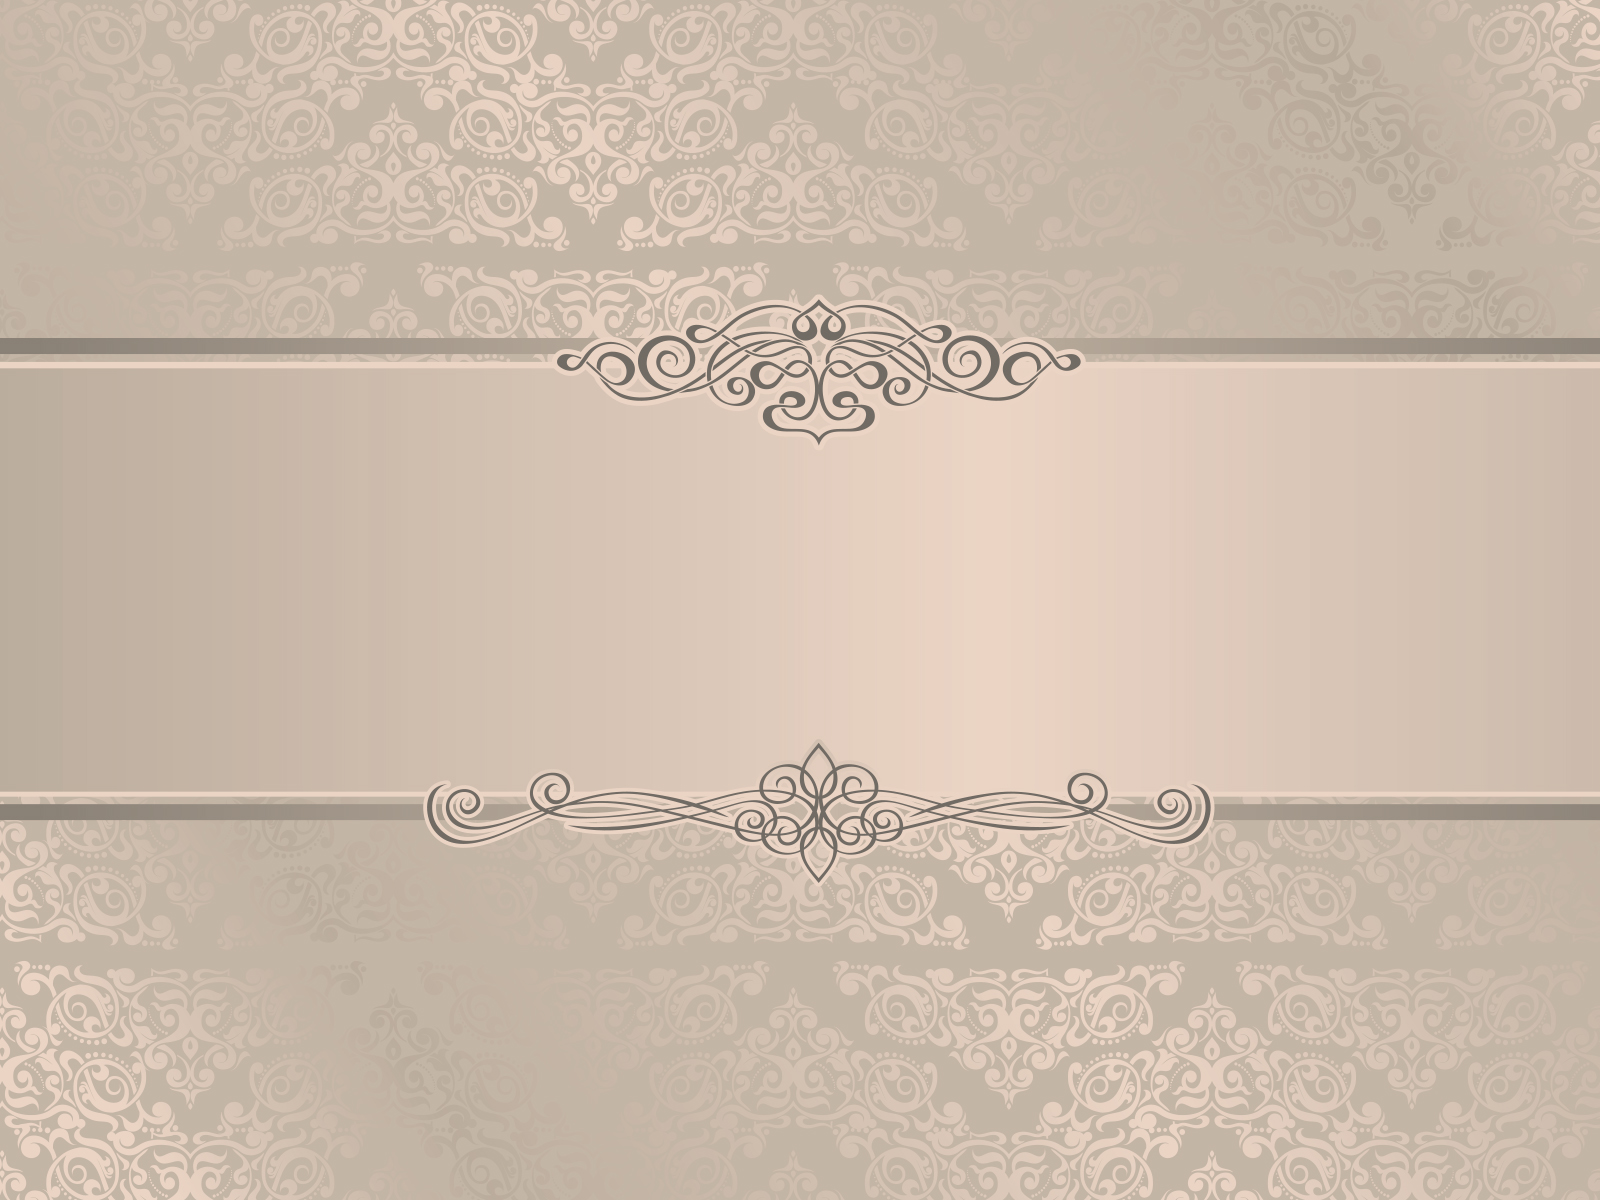 Fullsize Of Wedding Invitation Background